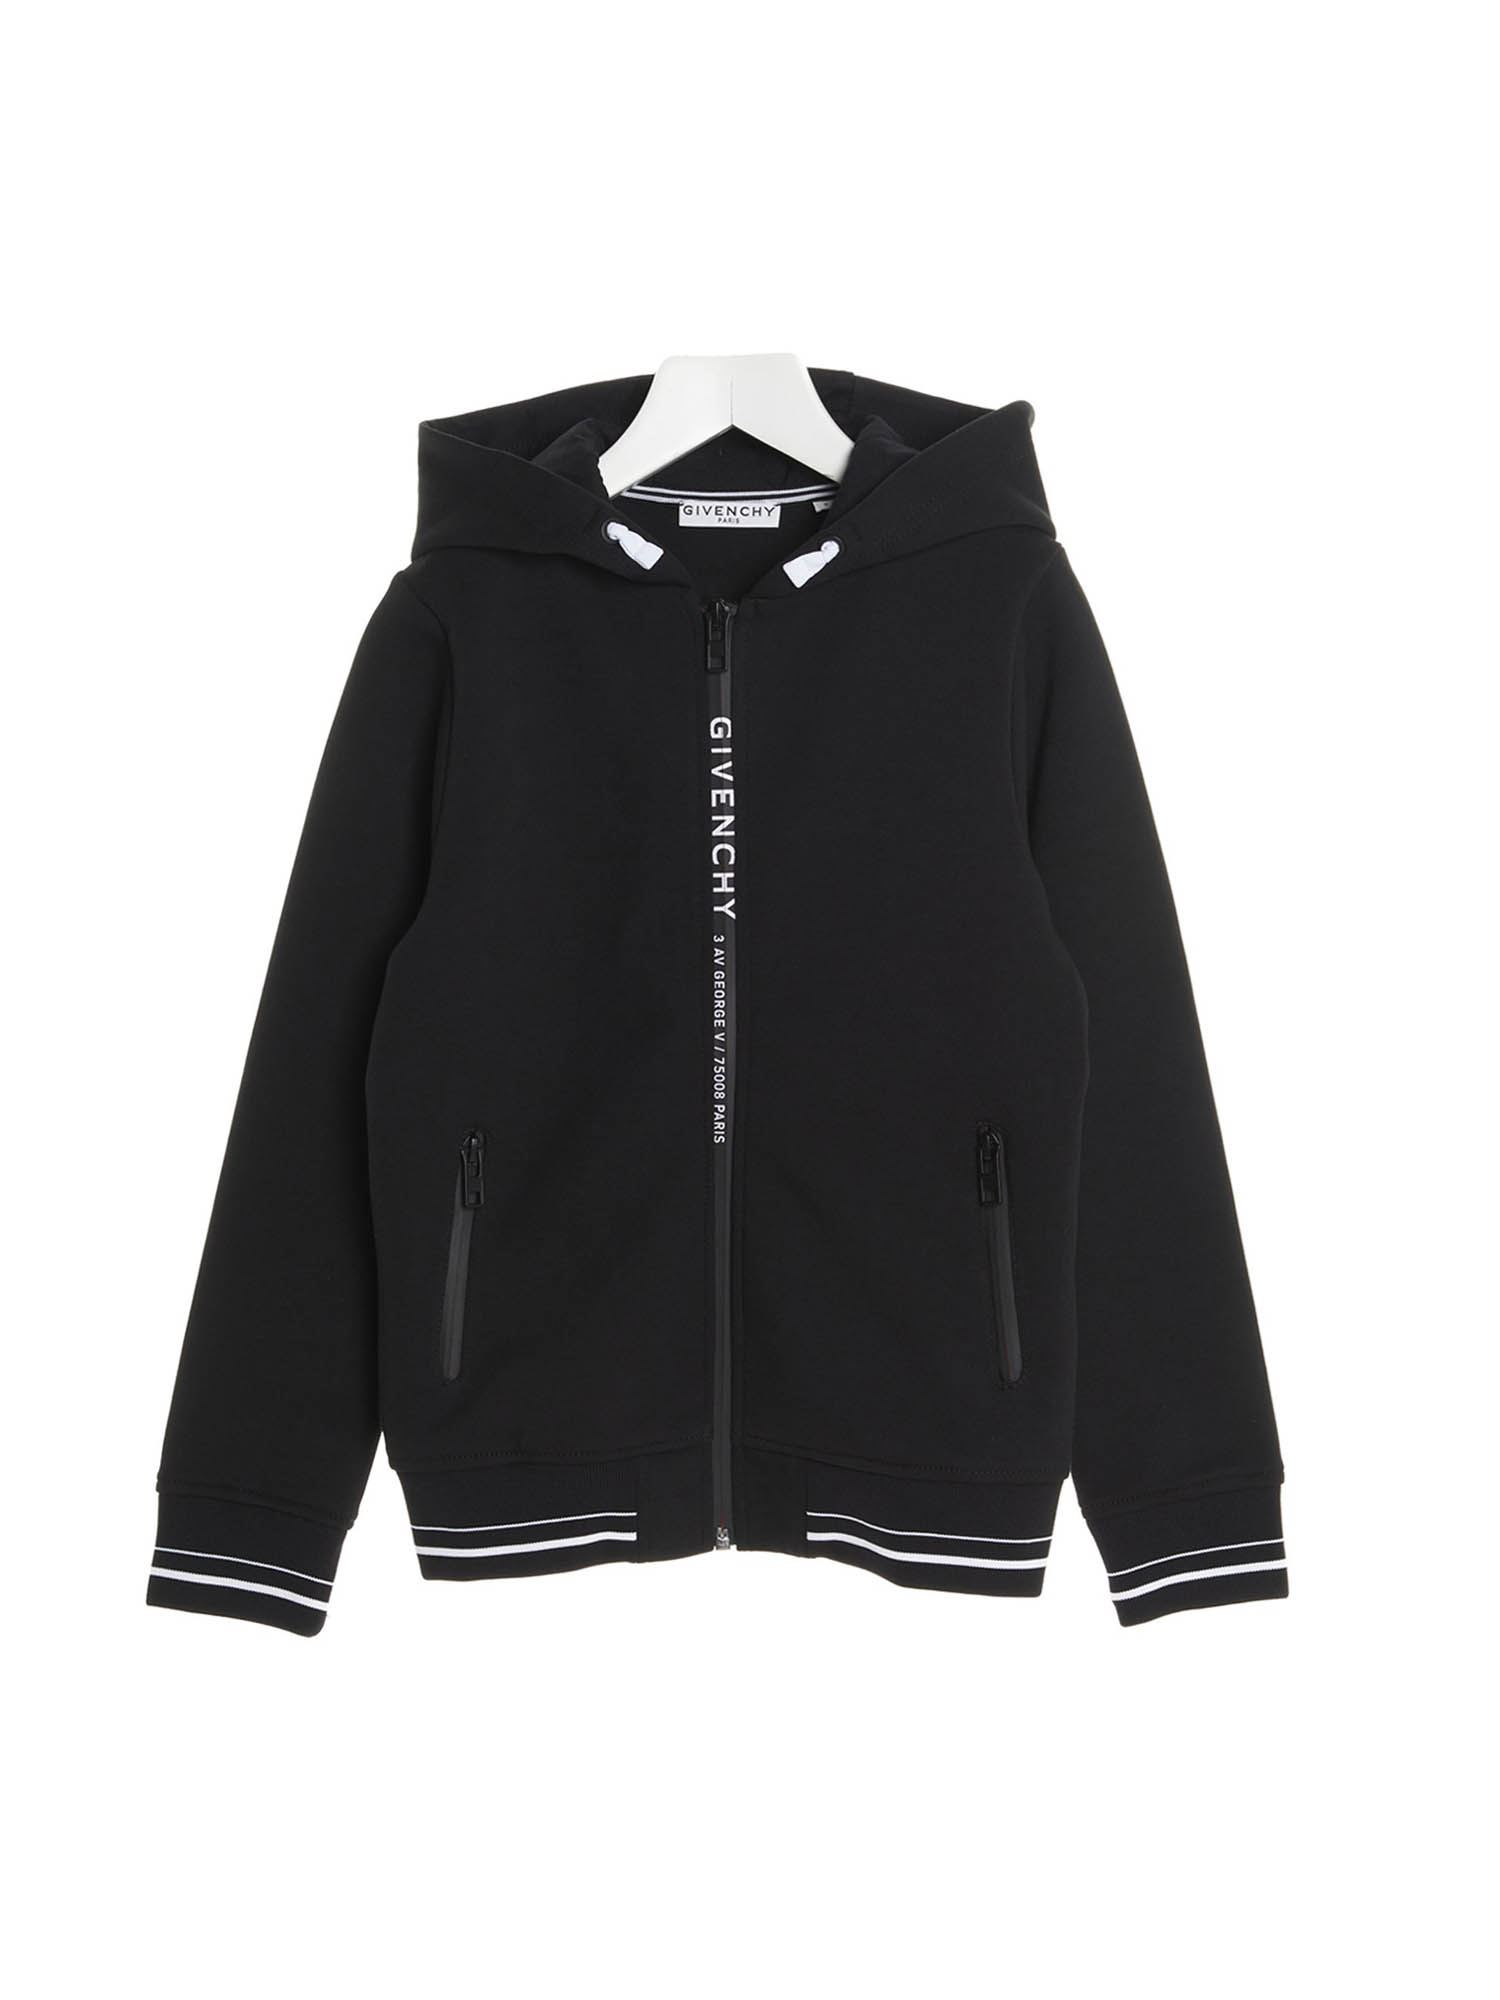 Givenchy BRANDED ZIPPED SWEATSHIRT IN BLACK